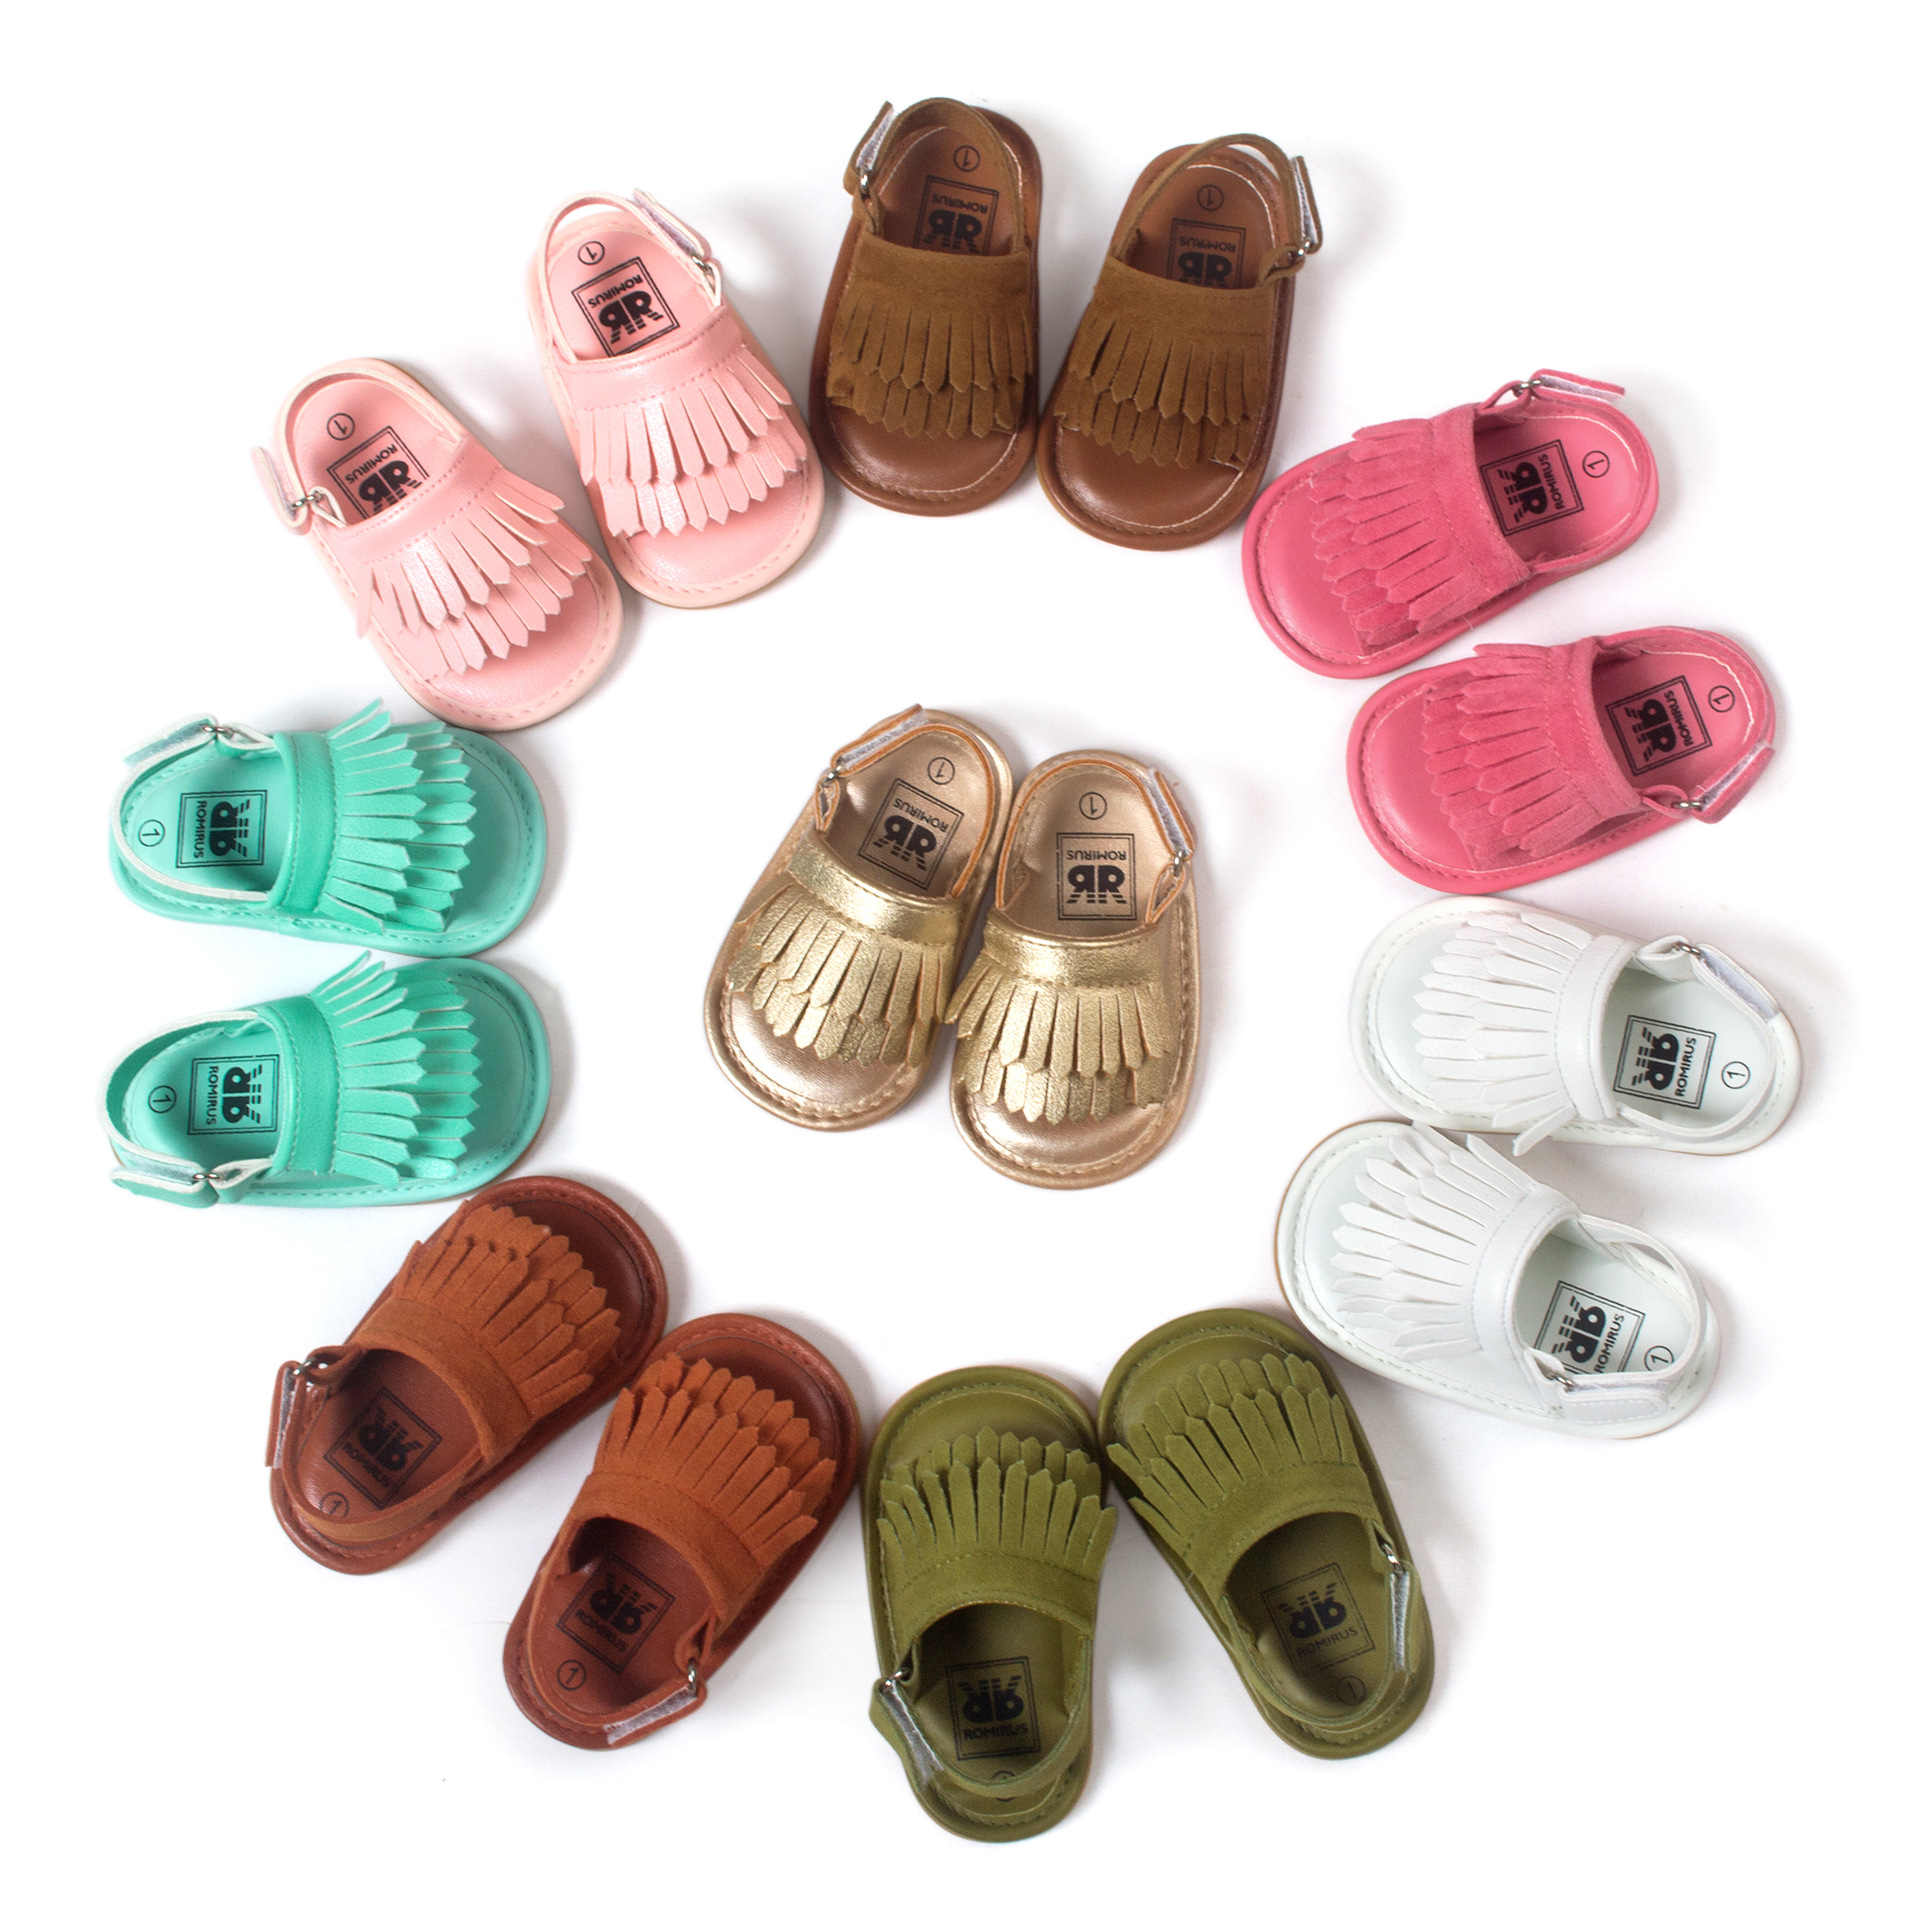 Cool Summer 2016 Freshly Picked Moccasins Sandals Baby Shoes Leather Tassels Babies Toddler Shoes Rubber Soled